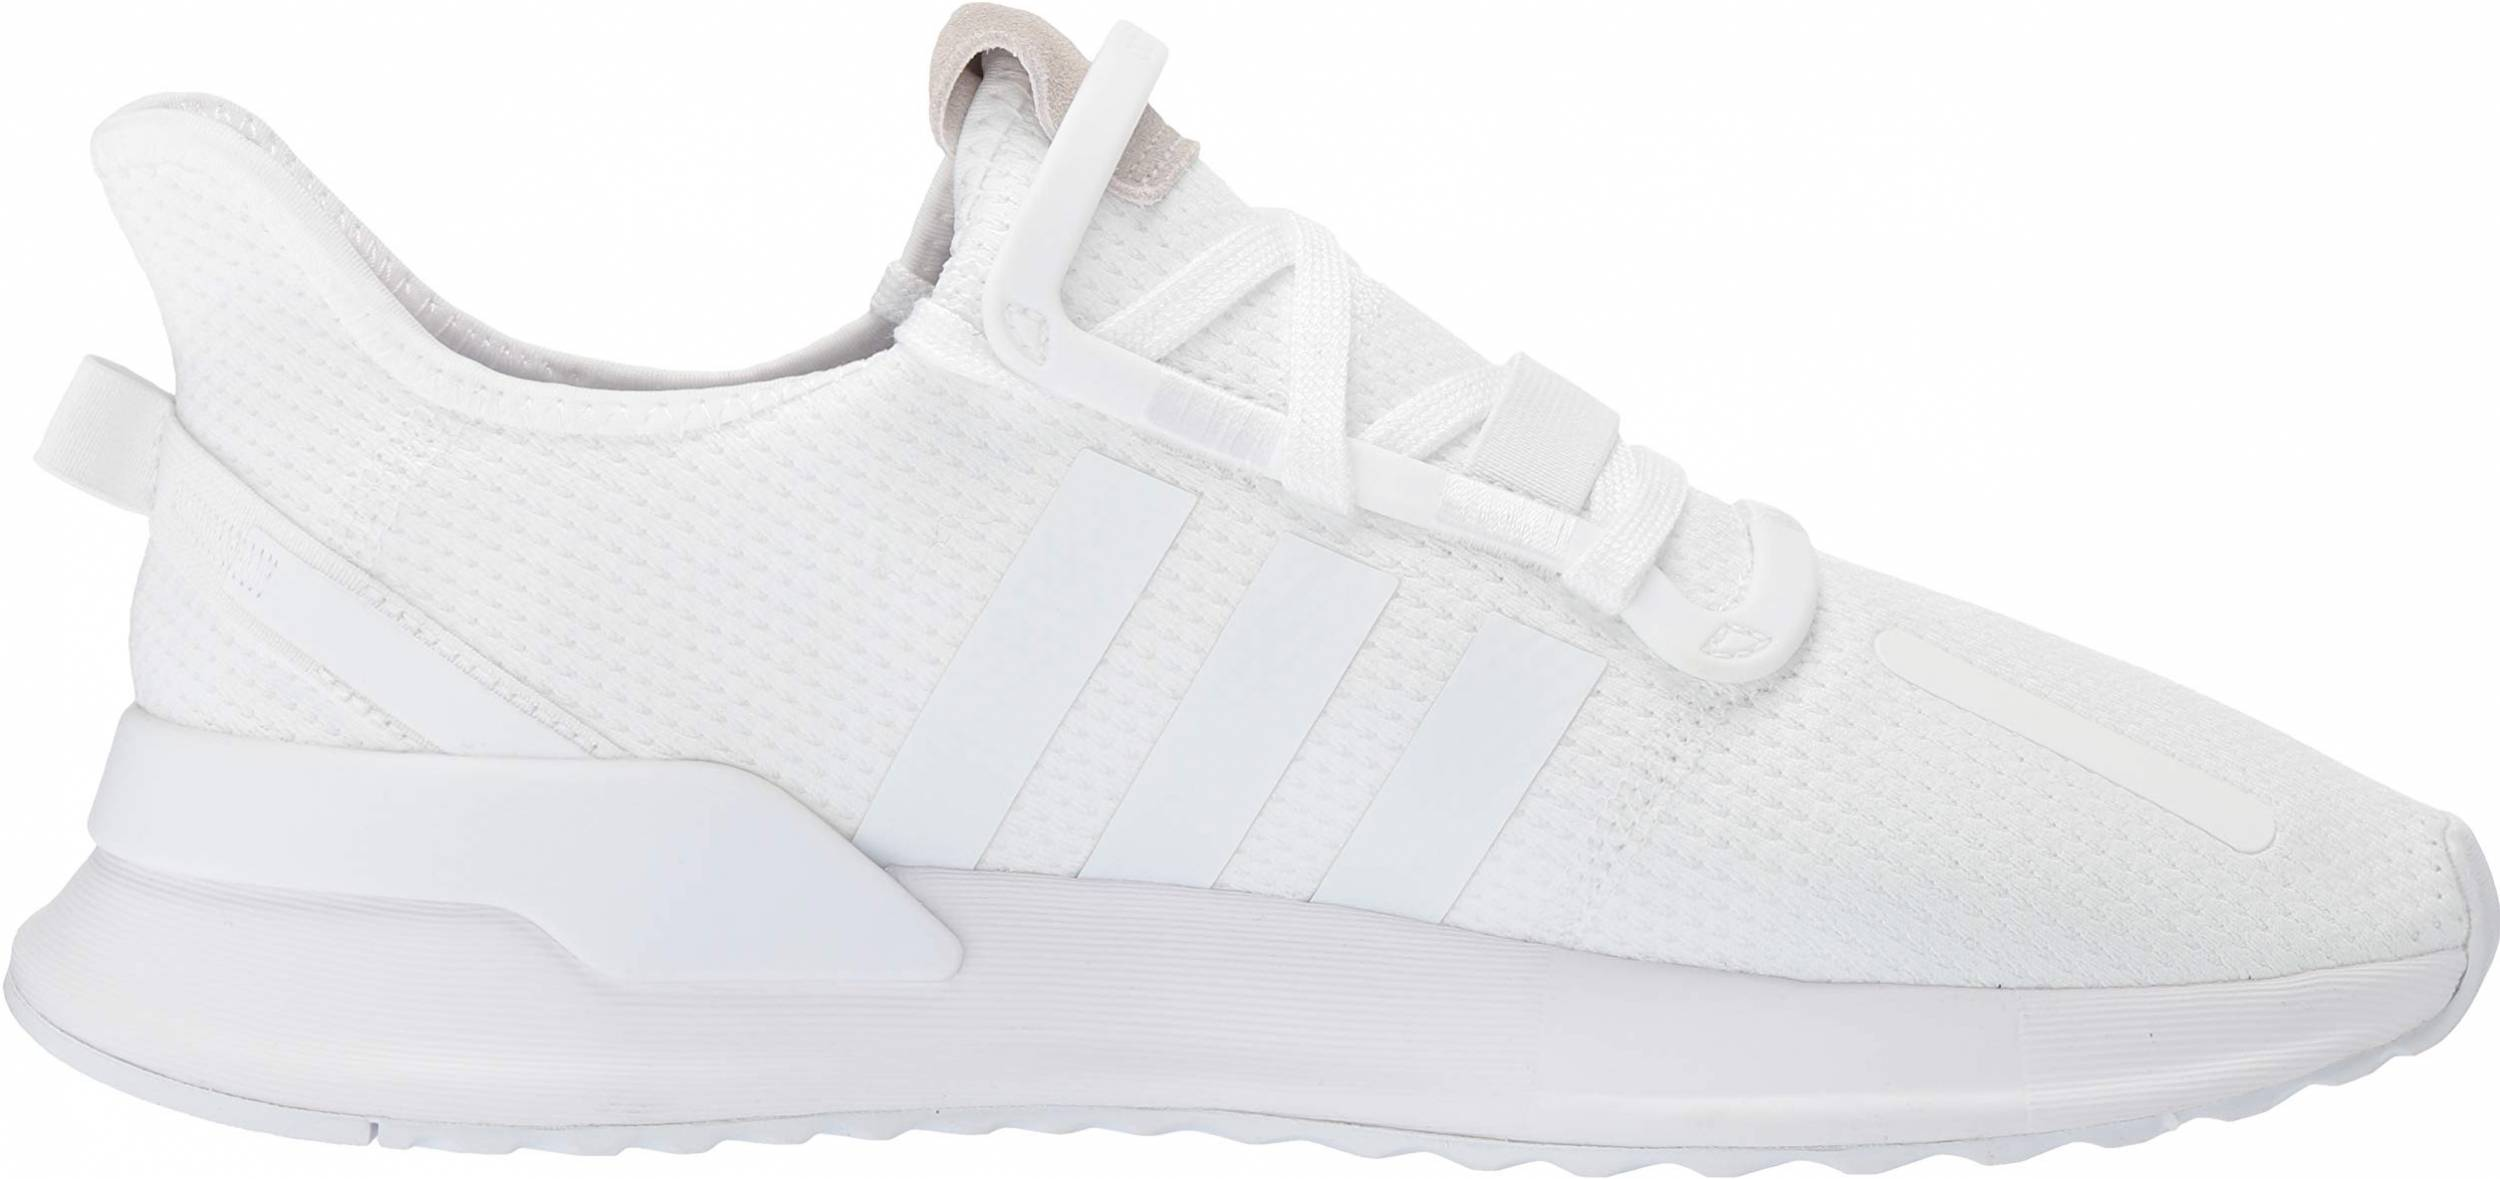 Only $50 + Review of Adidas U_Path Run